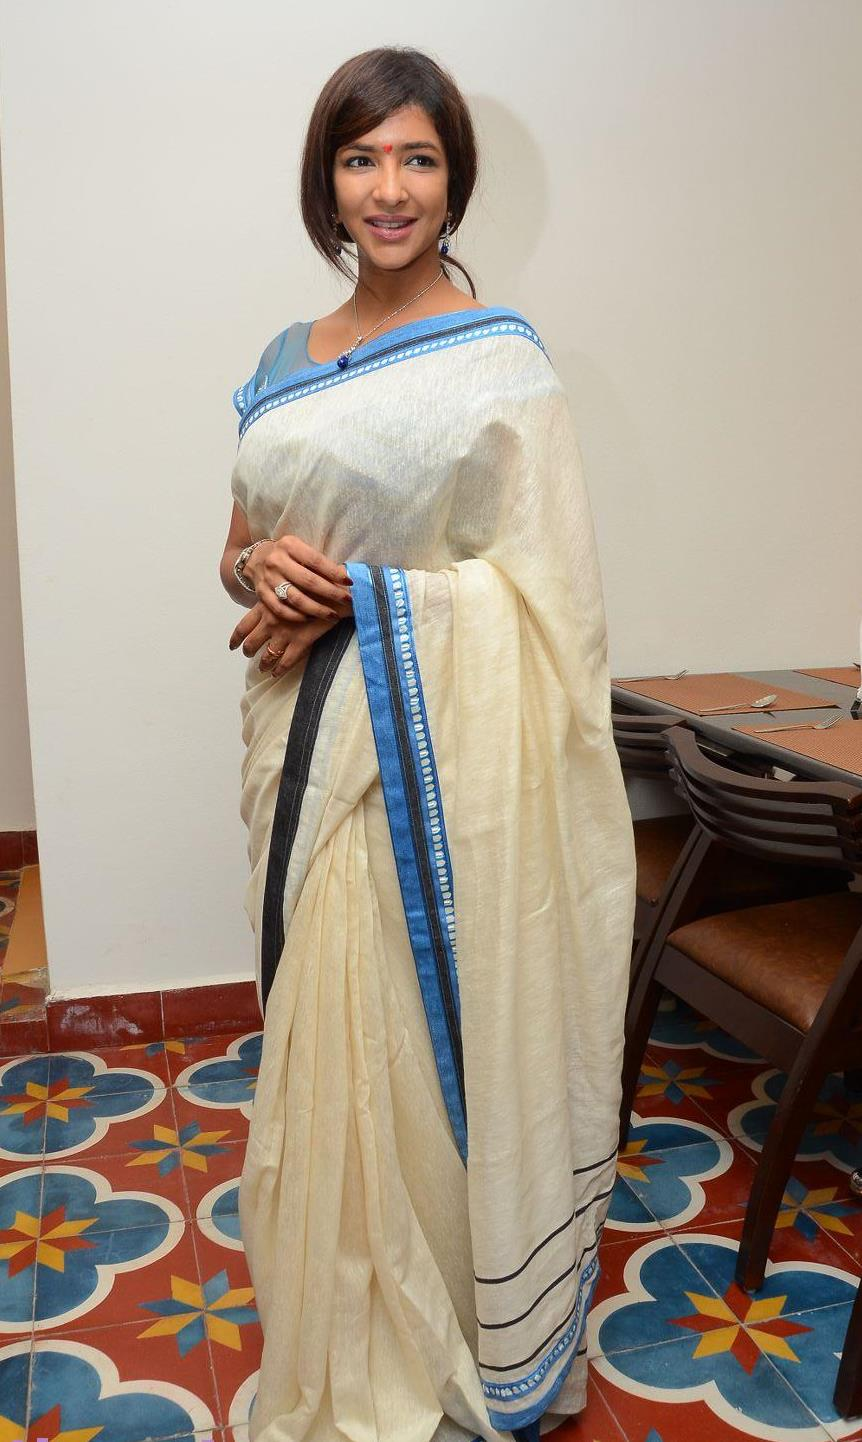 Check out her saree